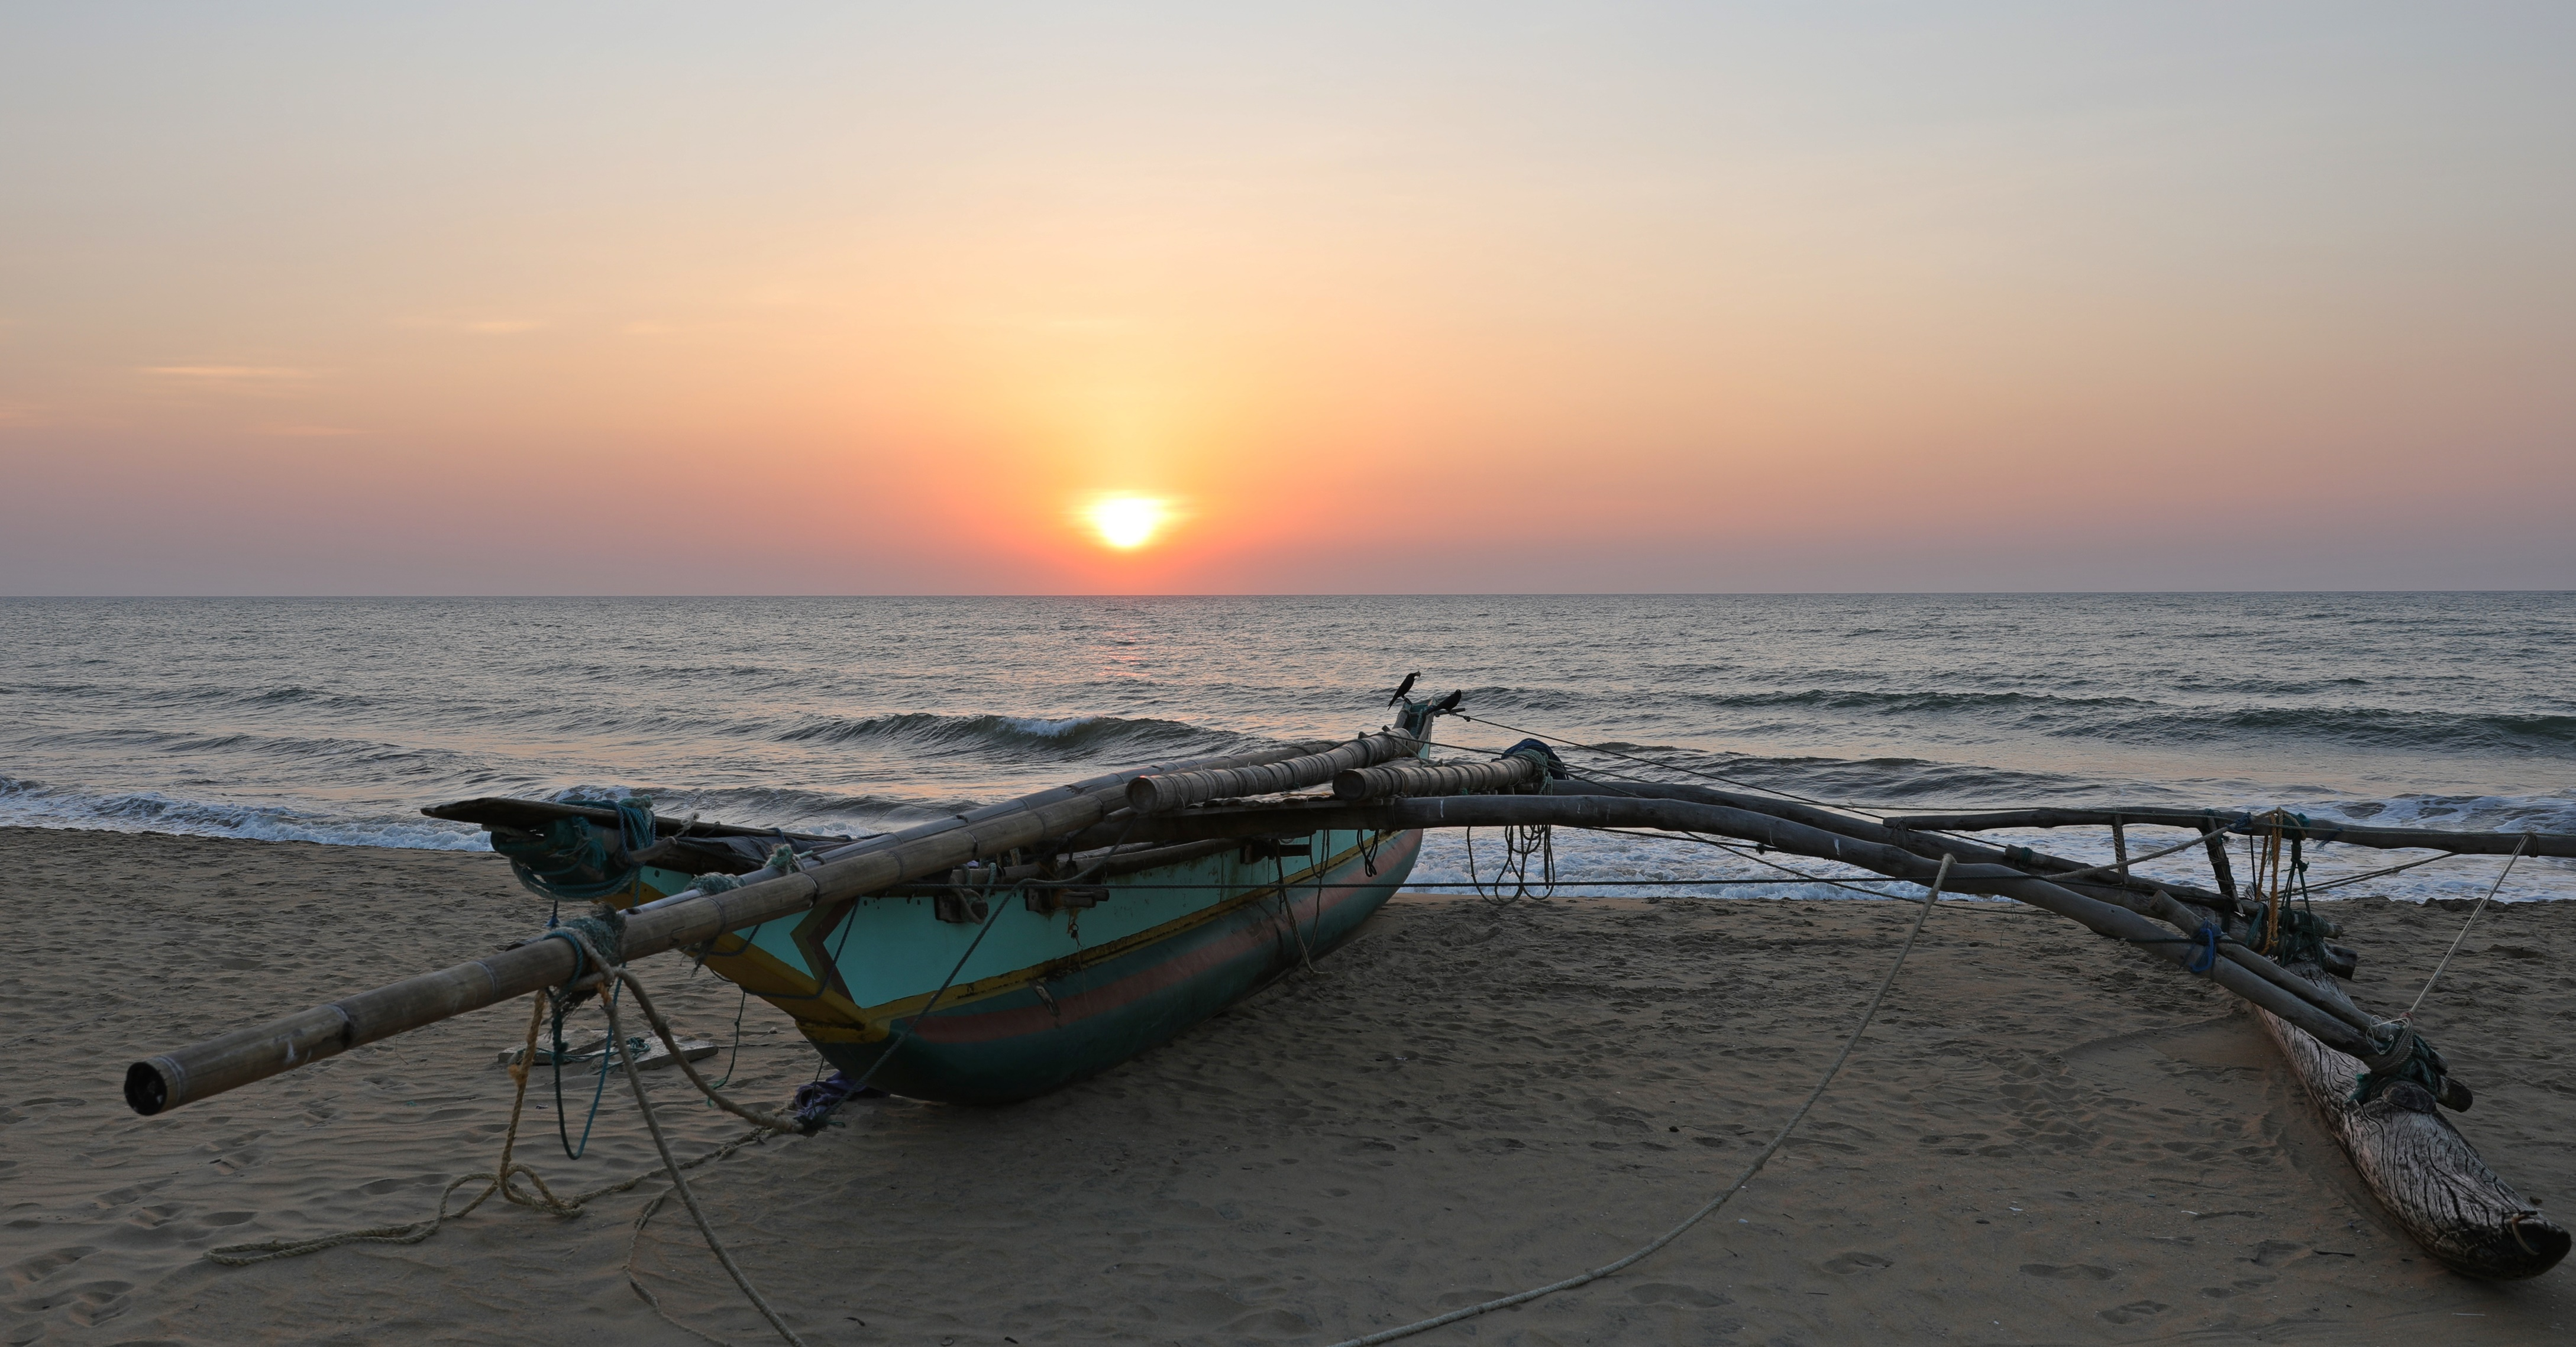 Sunset behind a fishing boat, Negombo Beach